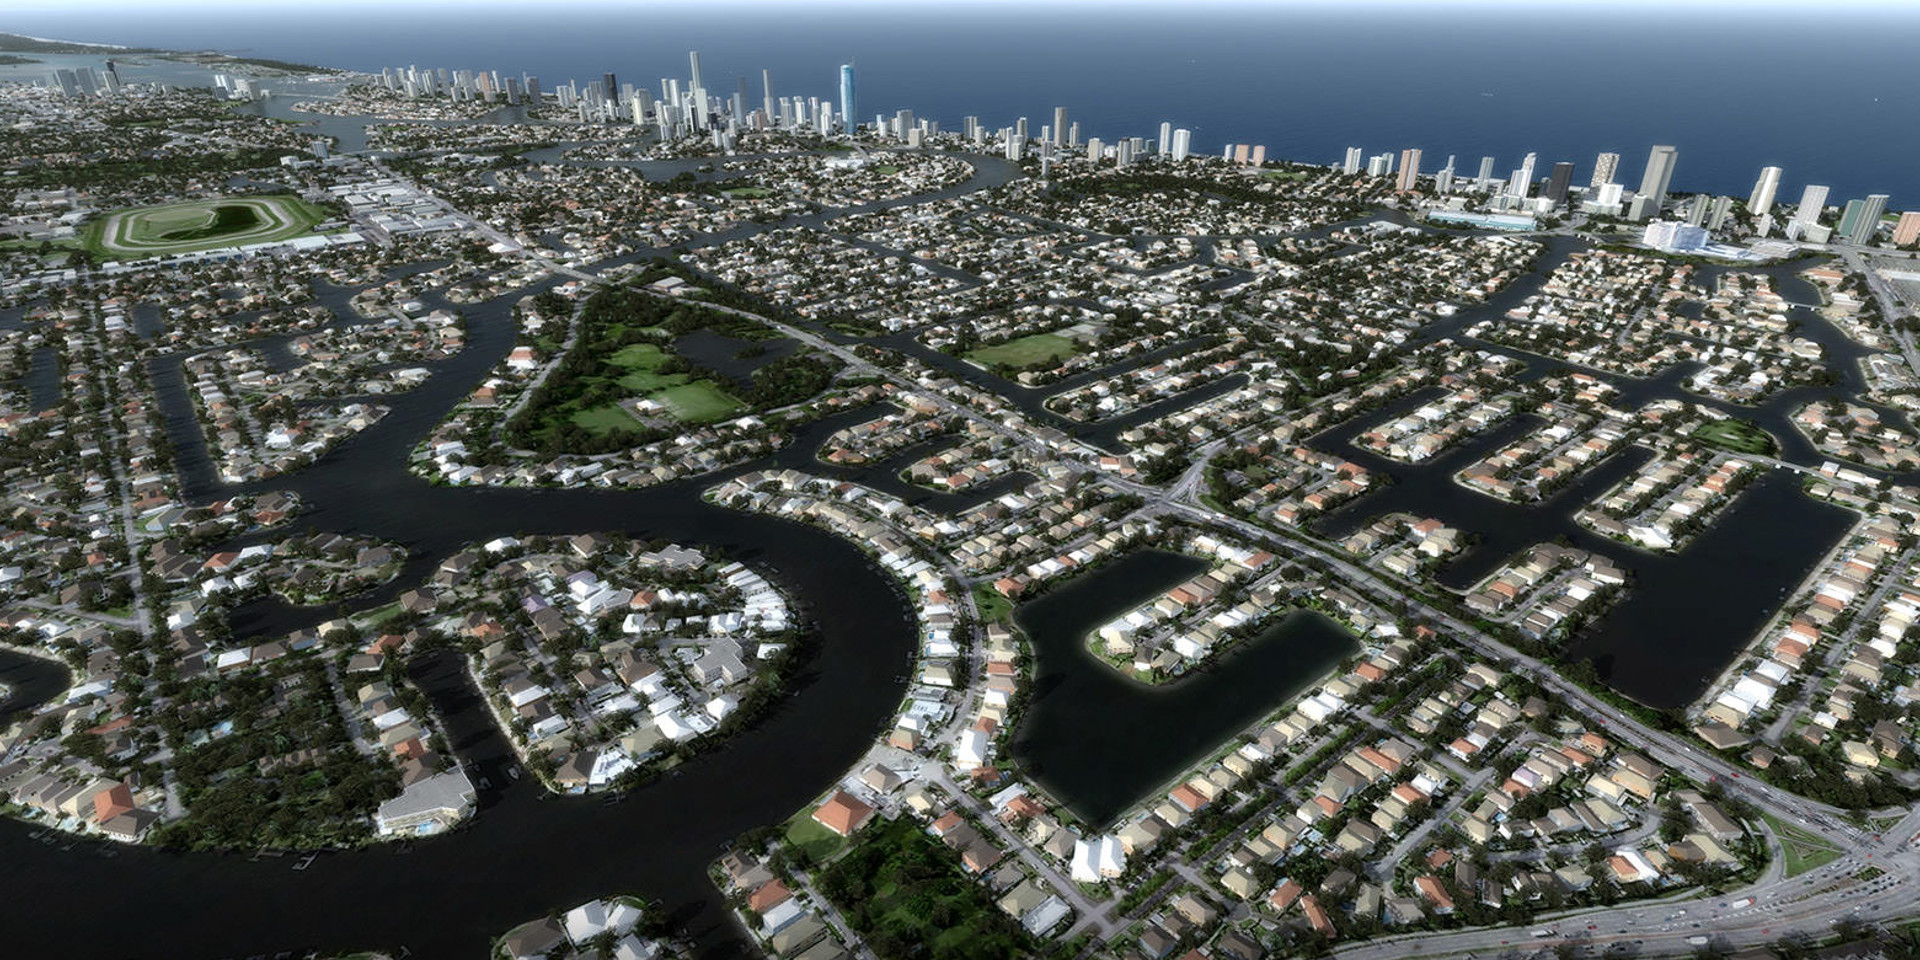 Orbx CityScene Gold Coast